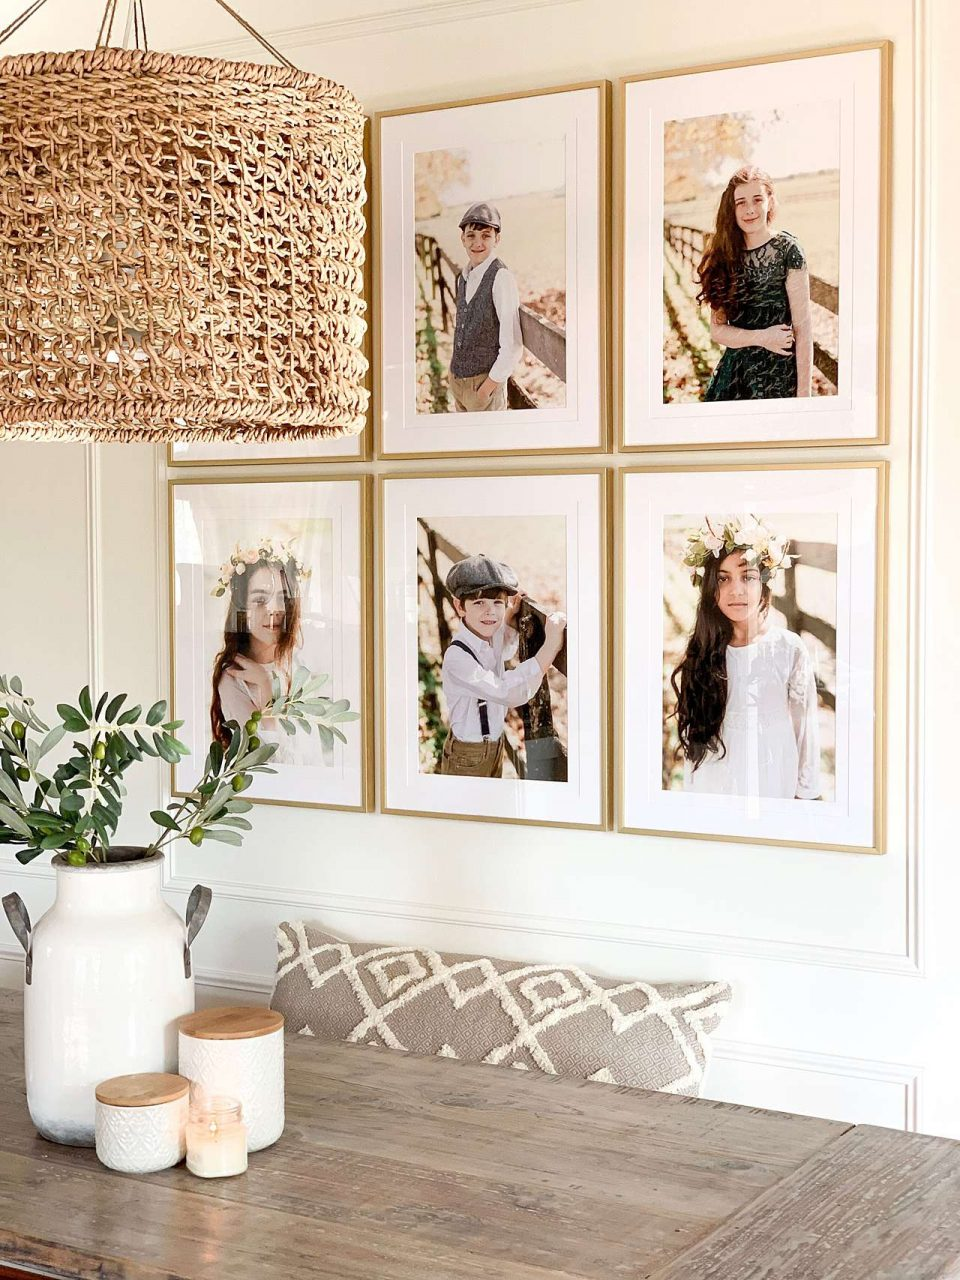 3x2 gallery wall